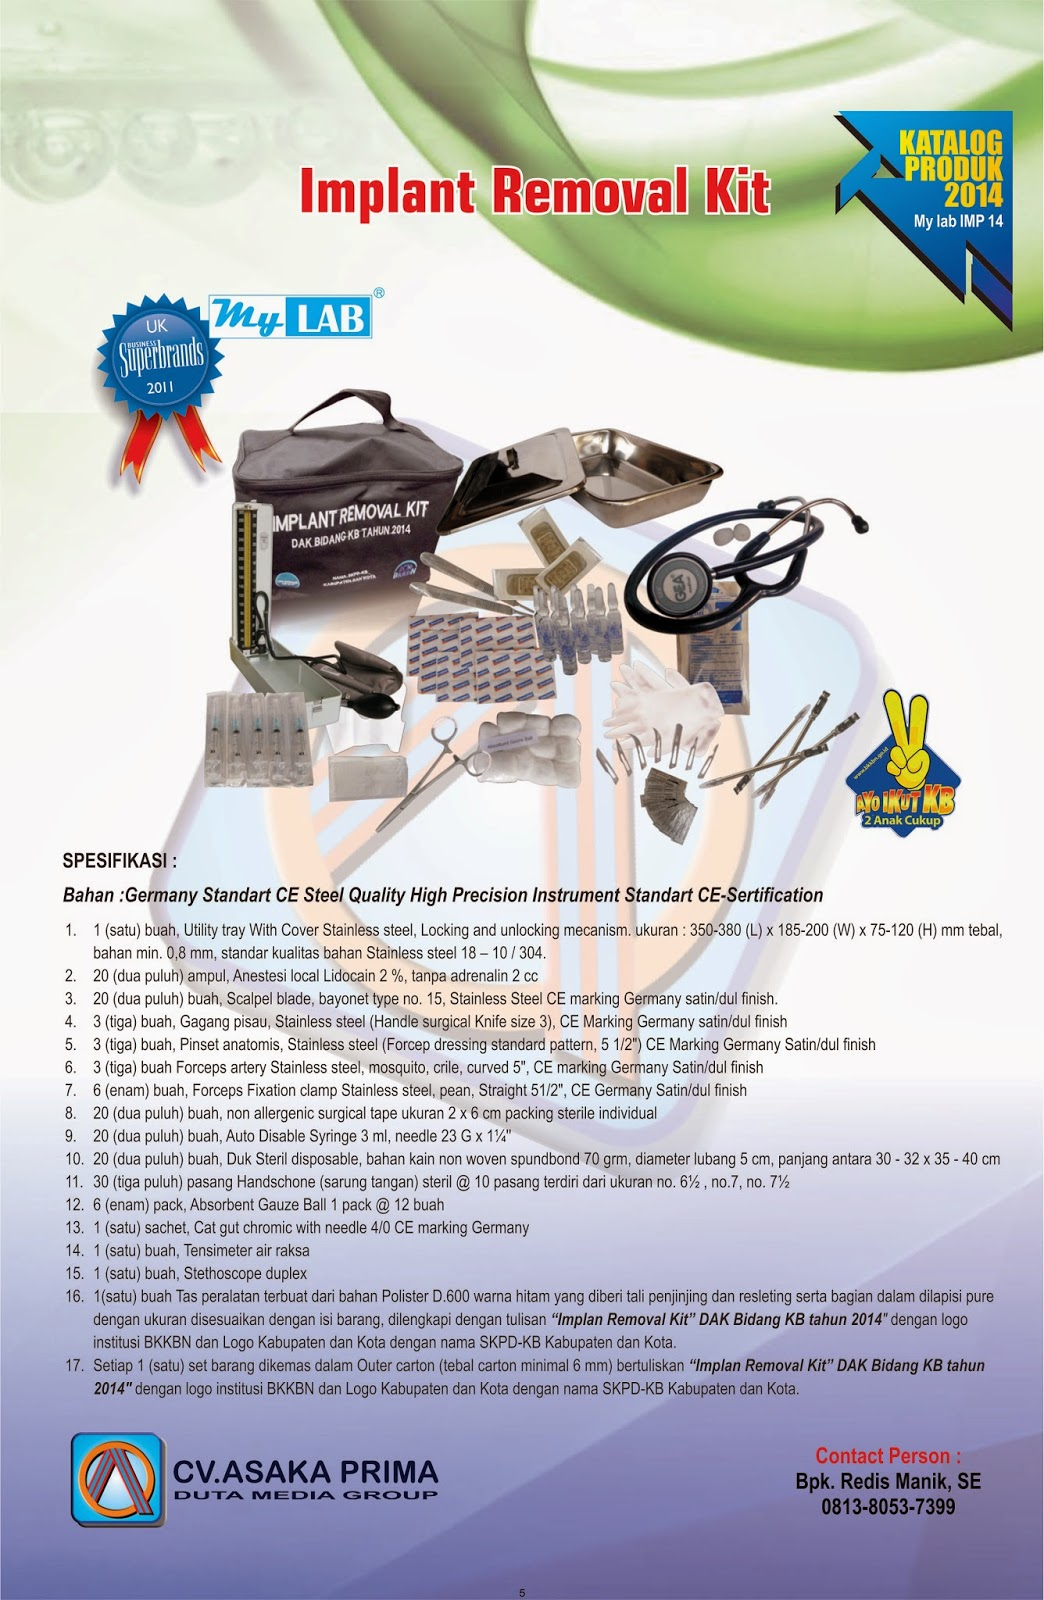 IMPLANT REMOVAL KIT 2014 ~   IMPLANT KIT BKKBN